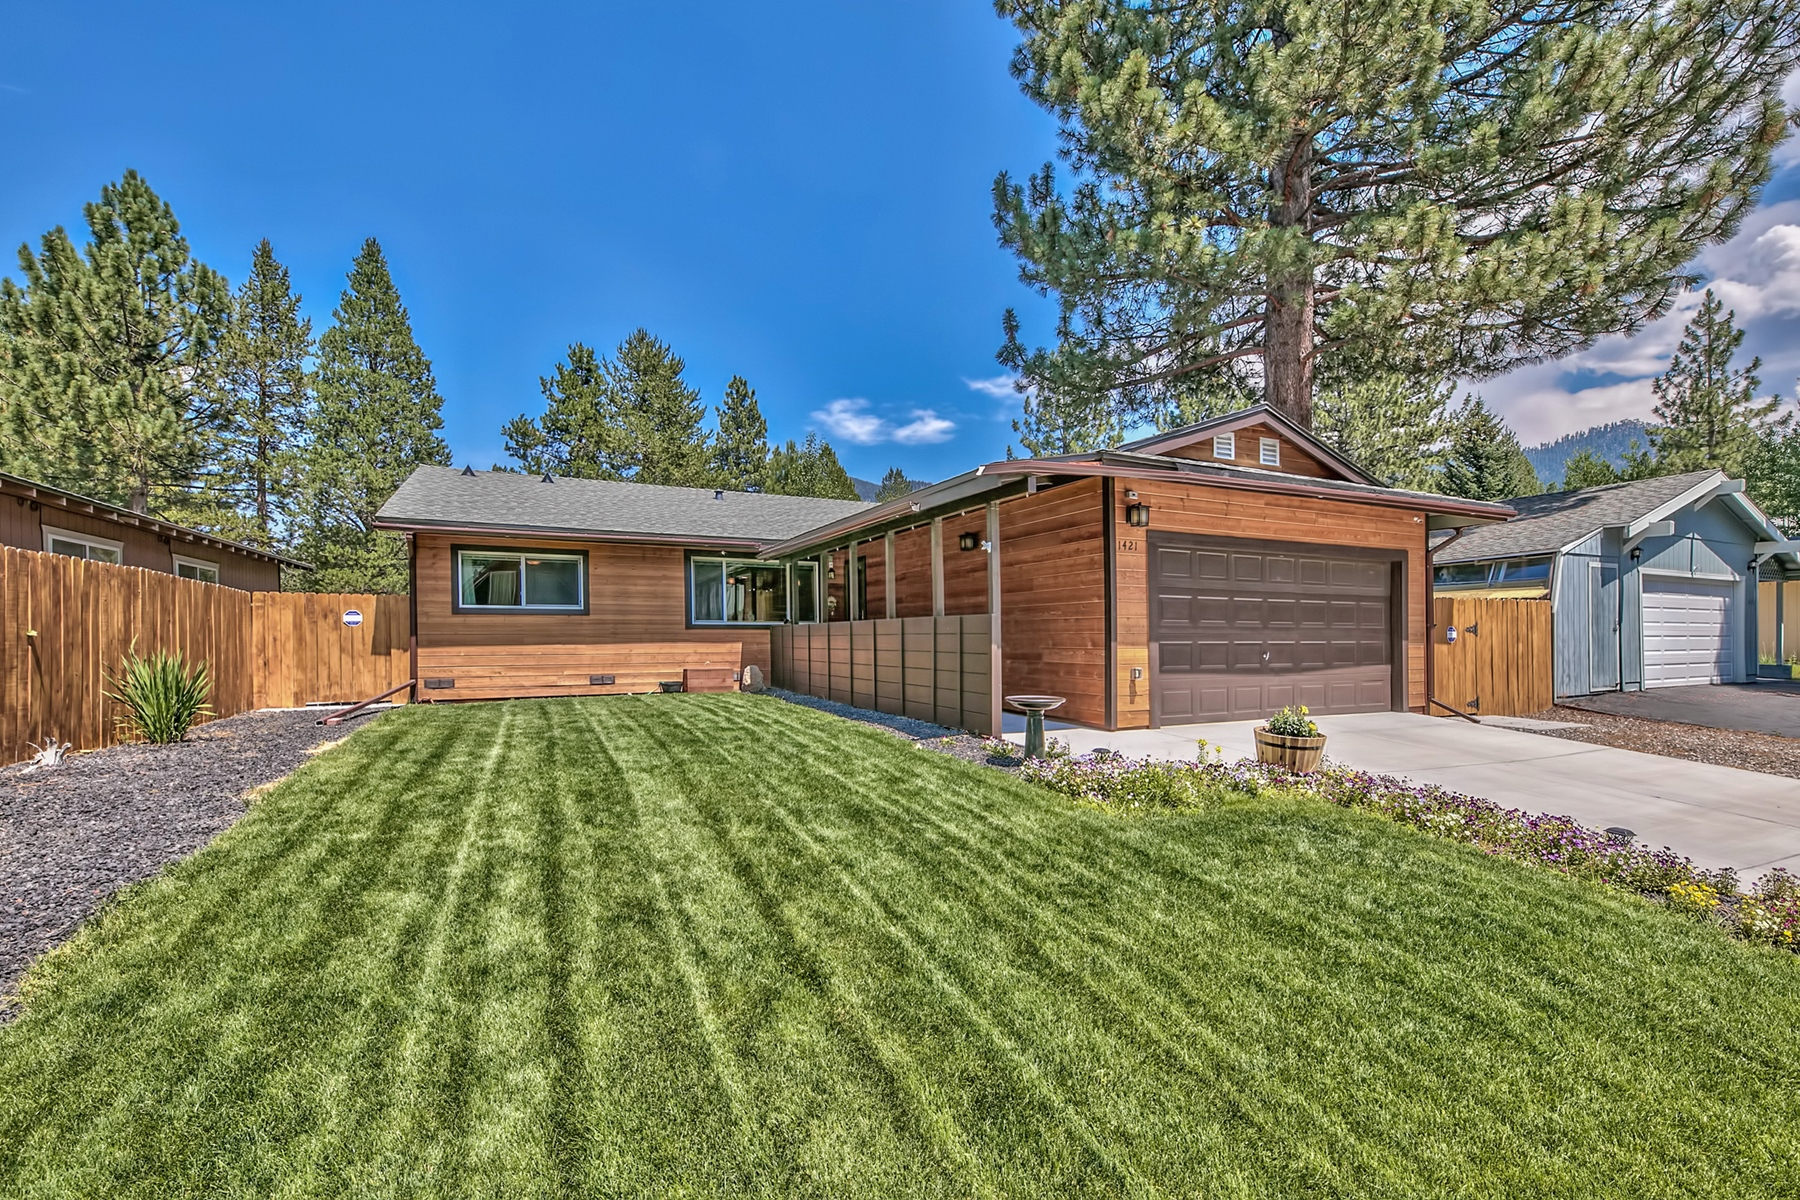 Single Family Home for Active at 1421 Matheson Drive, South Lake Tahoe CA 96150 1421 Matheson Drive South Lake Tahoe, California 96150 United States